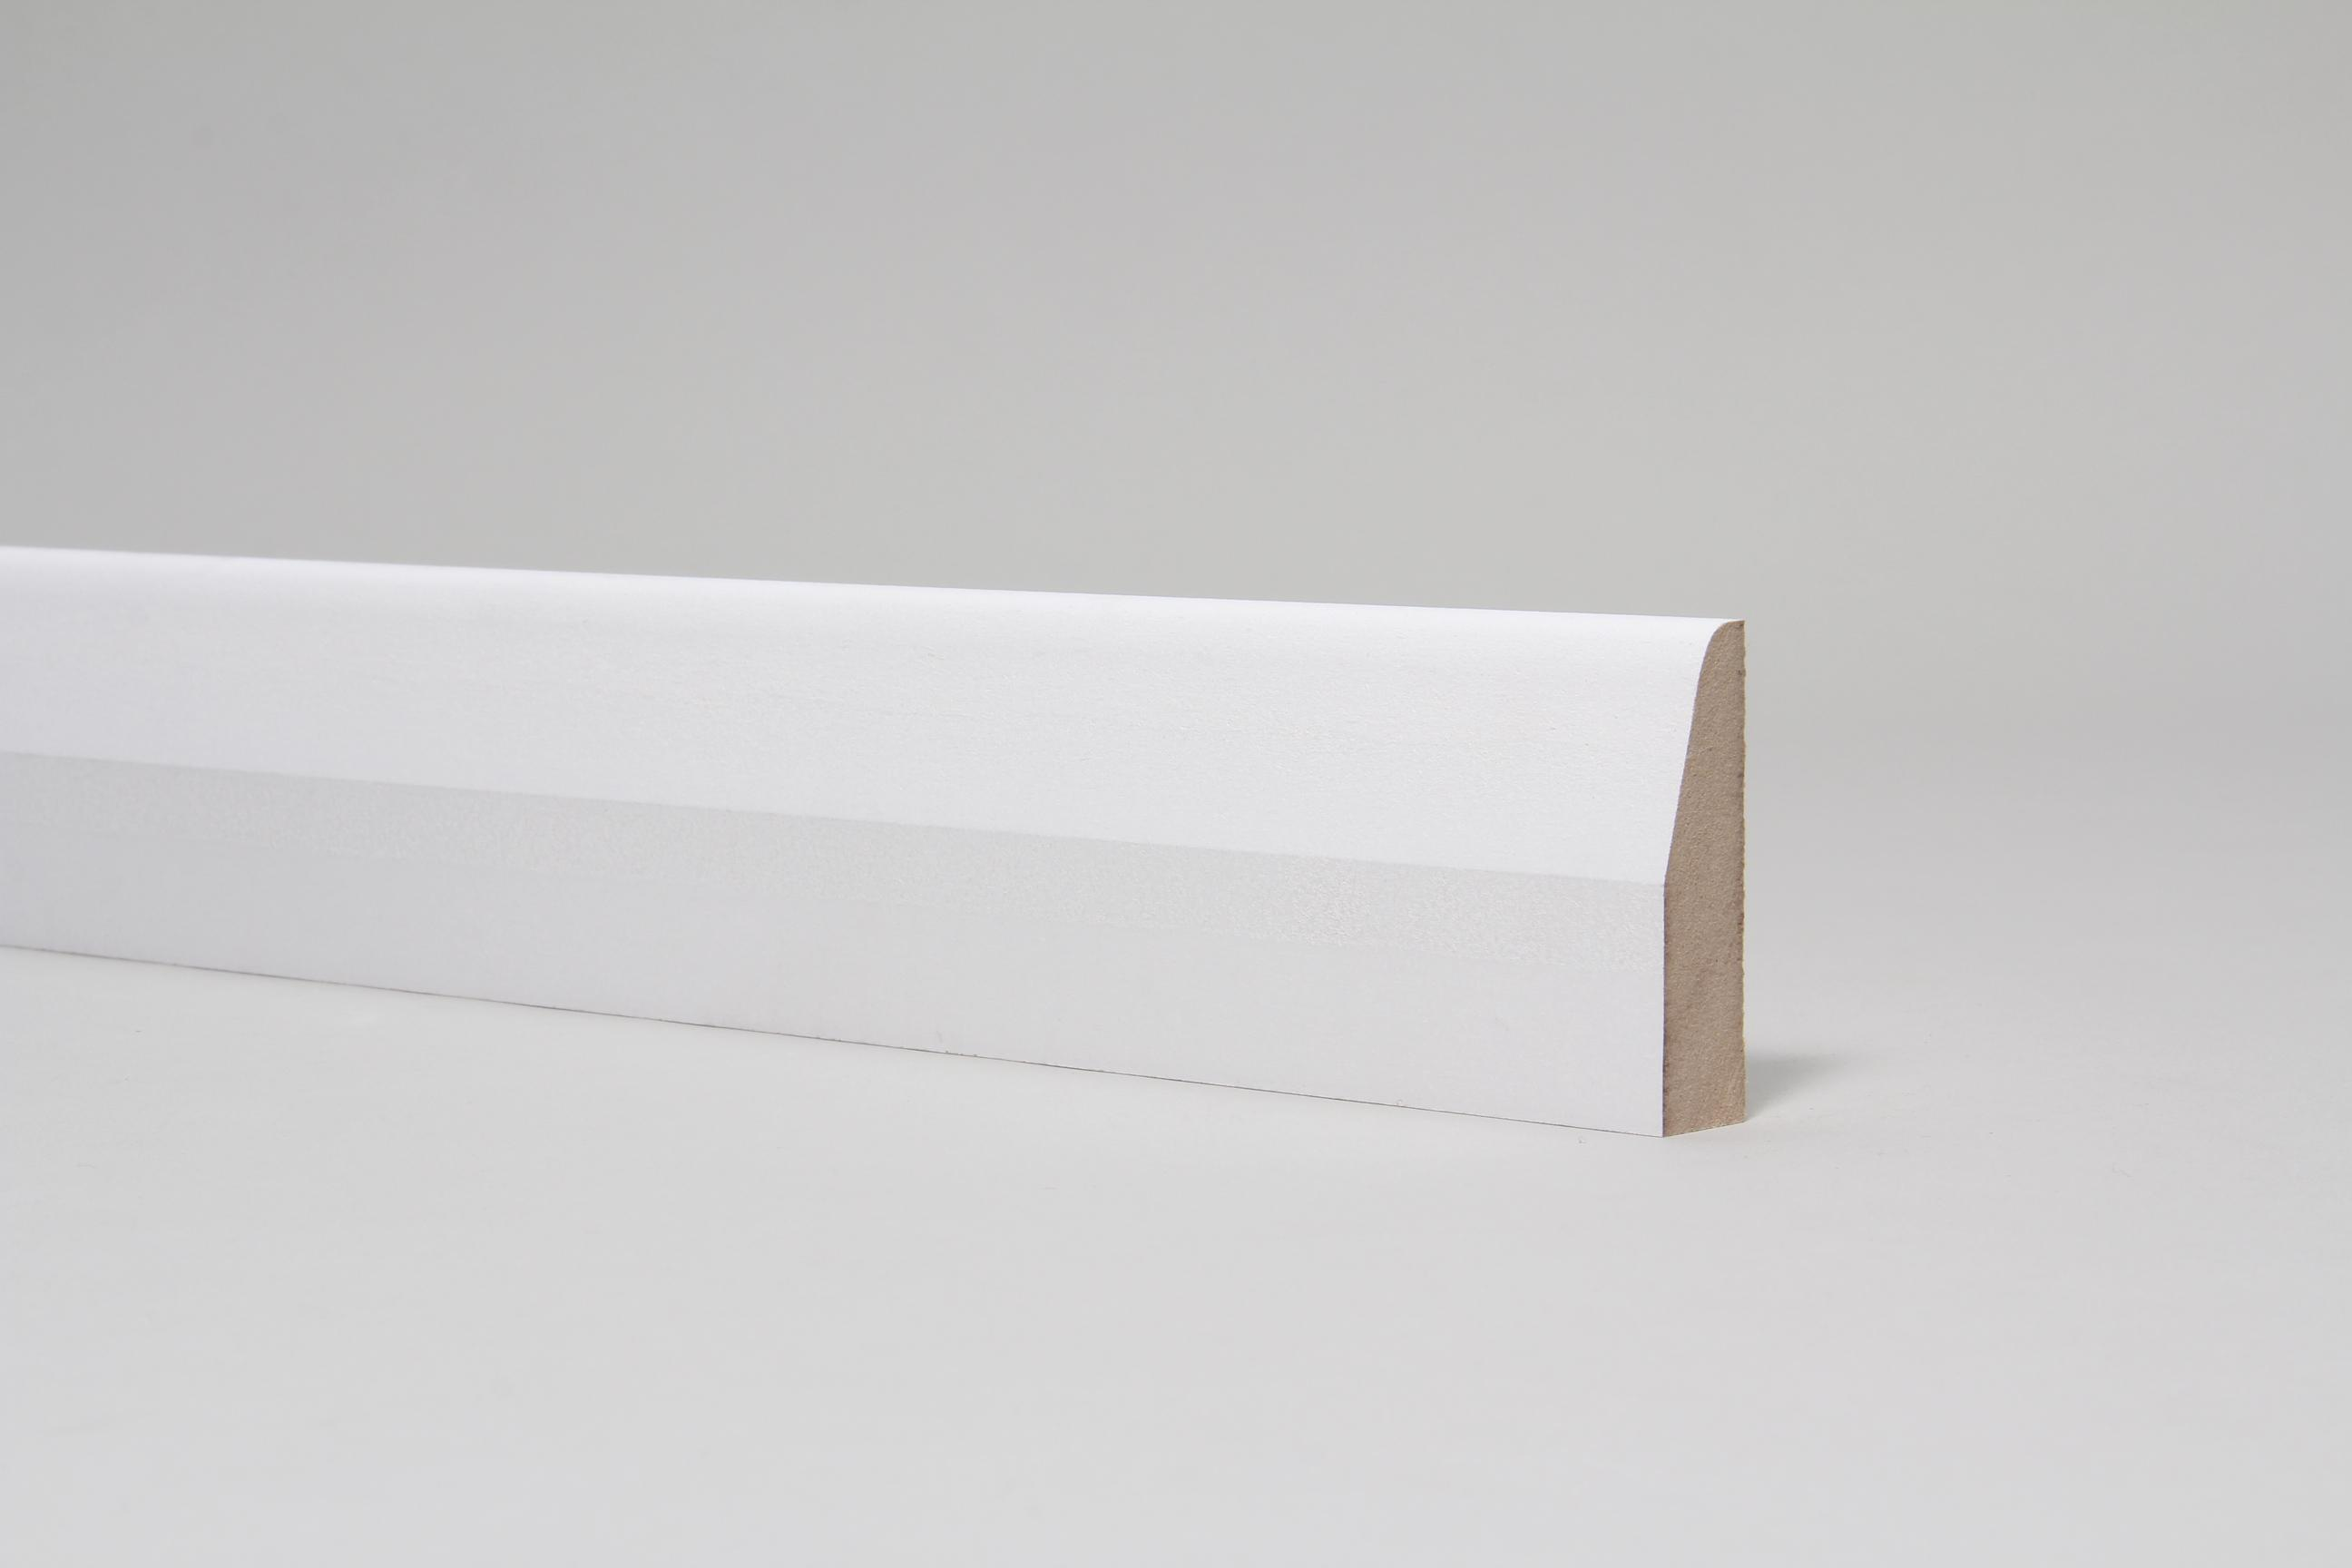 Chamfered & Rounded 18mm x 68mm x 4.4 Mtr Primed